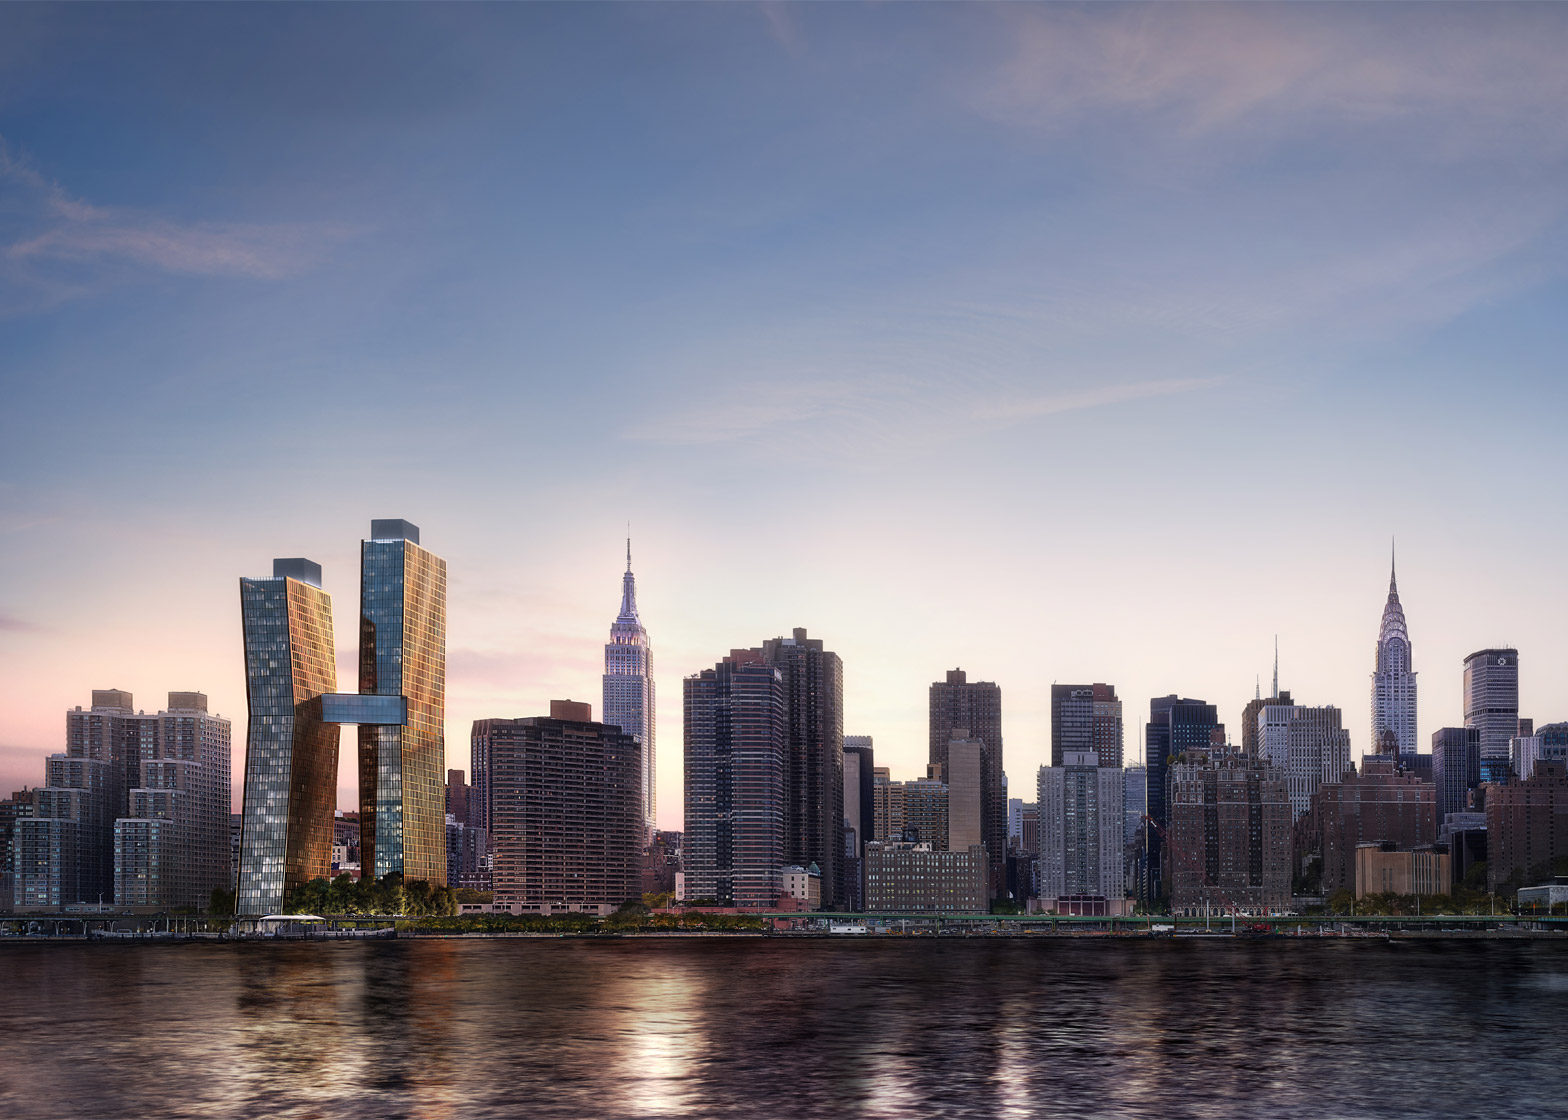 https://static.dezeen.com/uploads/2016/04/shop-architects-626-first-avenue-new-york-city-tower-renderings_dezeen_1568_5.jpg